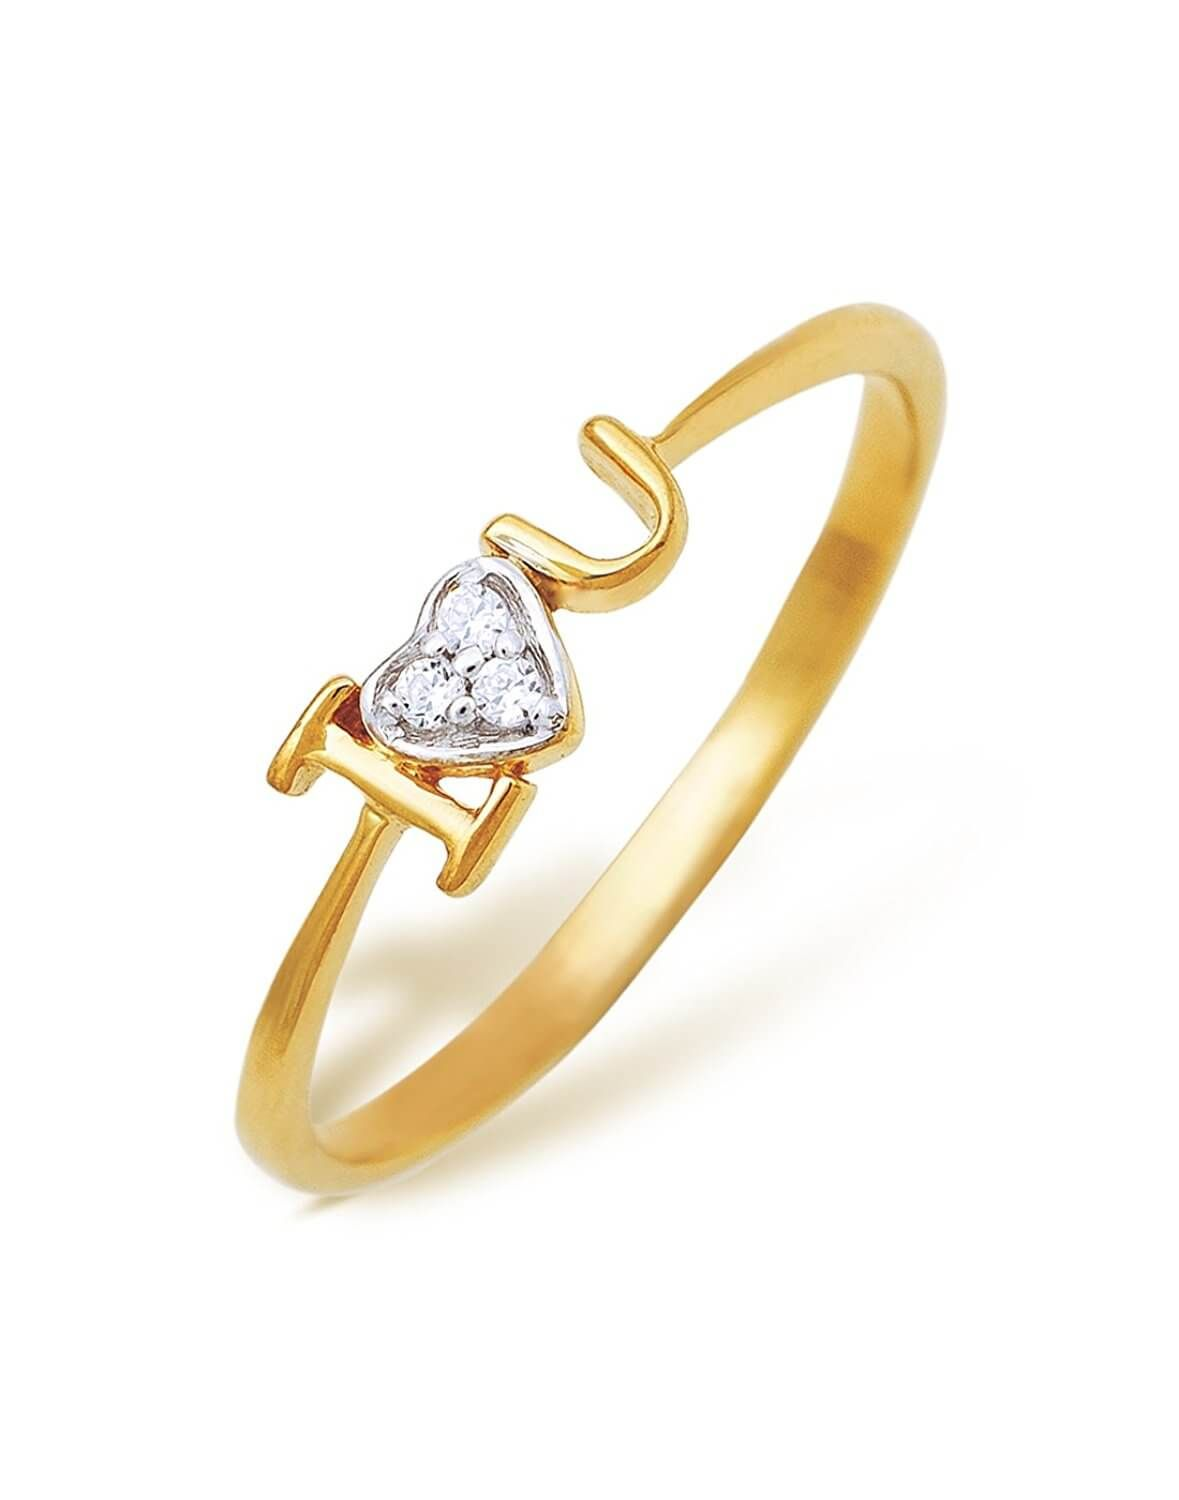 Here Are Some Of The Latest Gold Ring Designs For Female For A Wedding Engagement Everyday Use Which Ad Gold Ring Designs Ring Design For Female Ring Designs